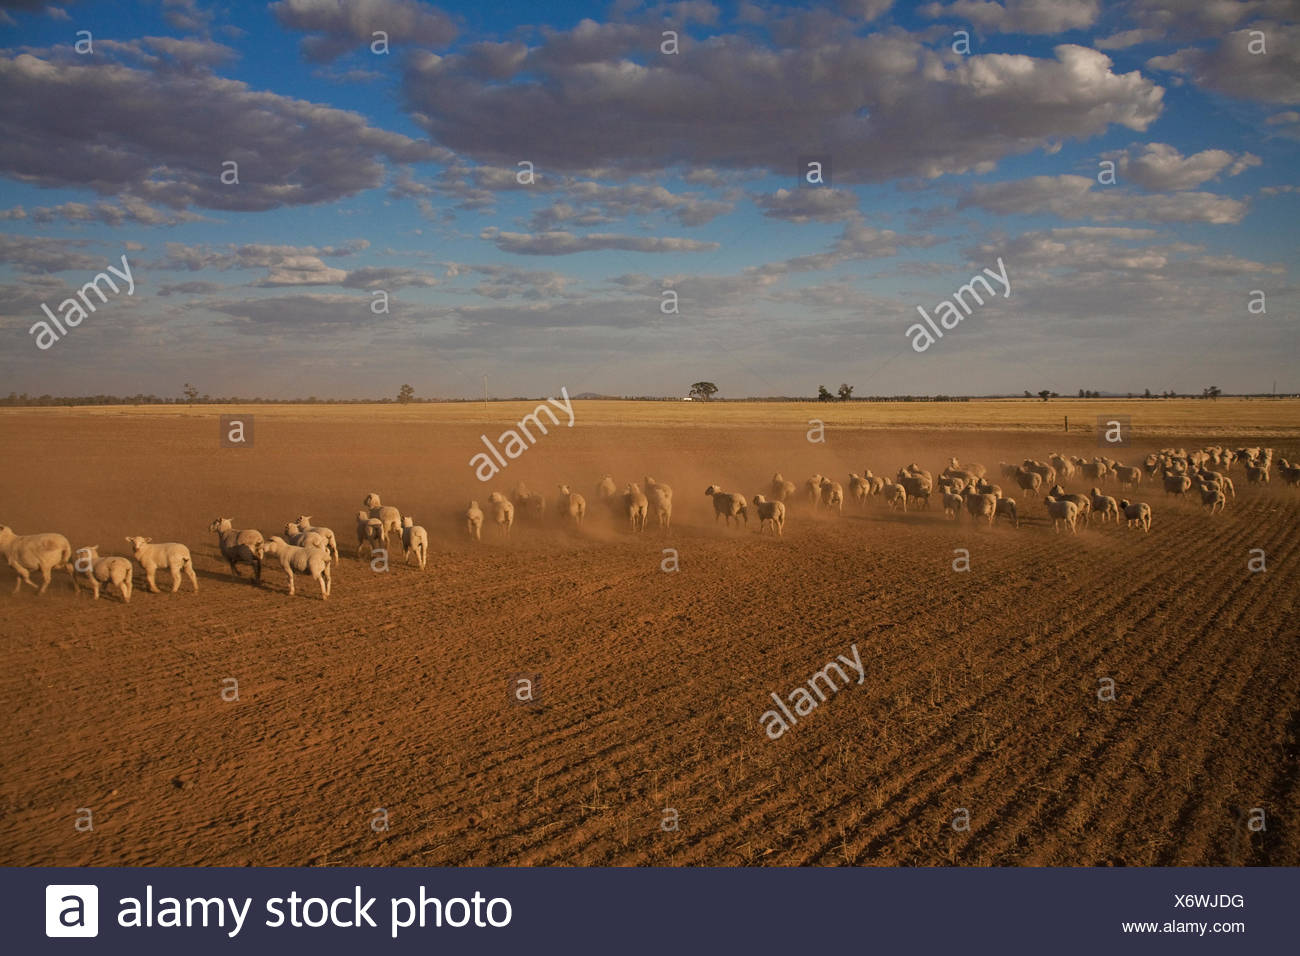 Sheep are put out to graze in a failed wheat field caused by drought. - Stock Image